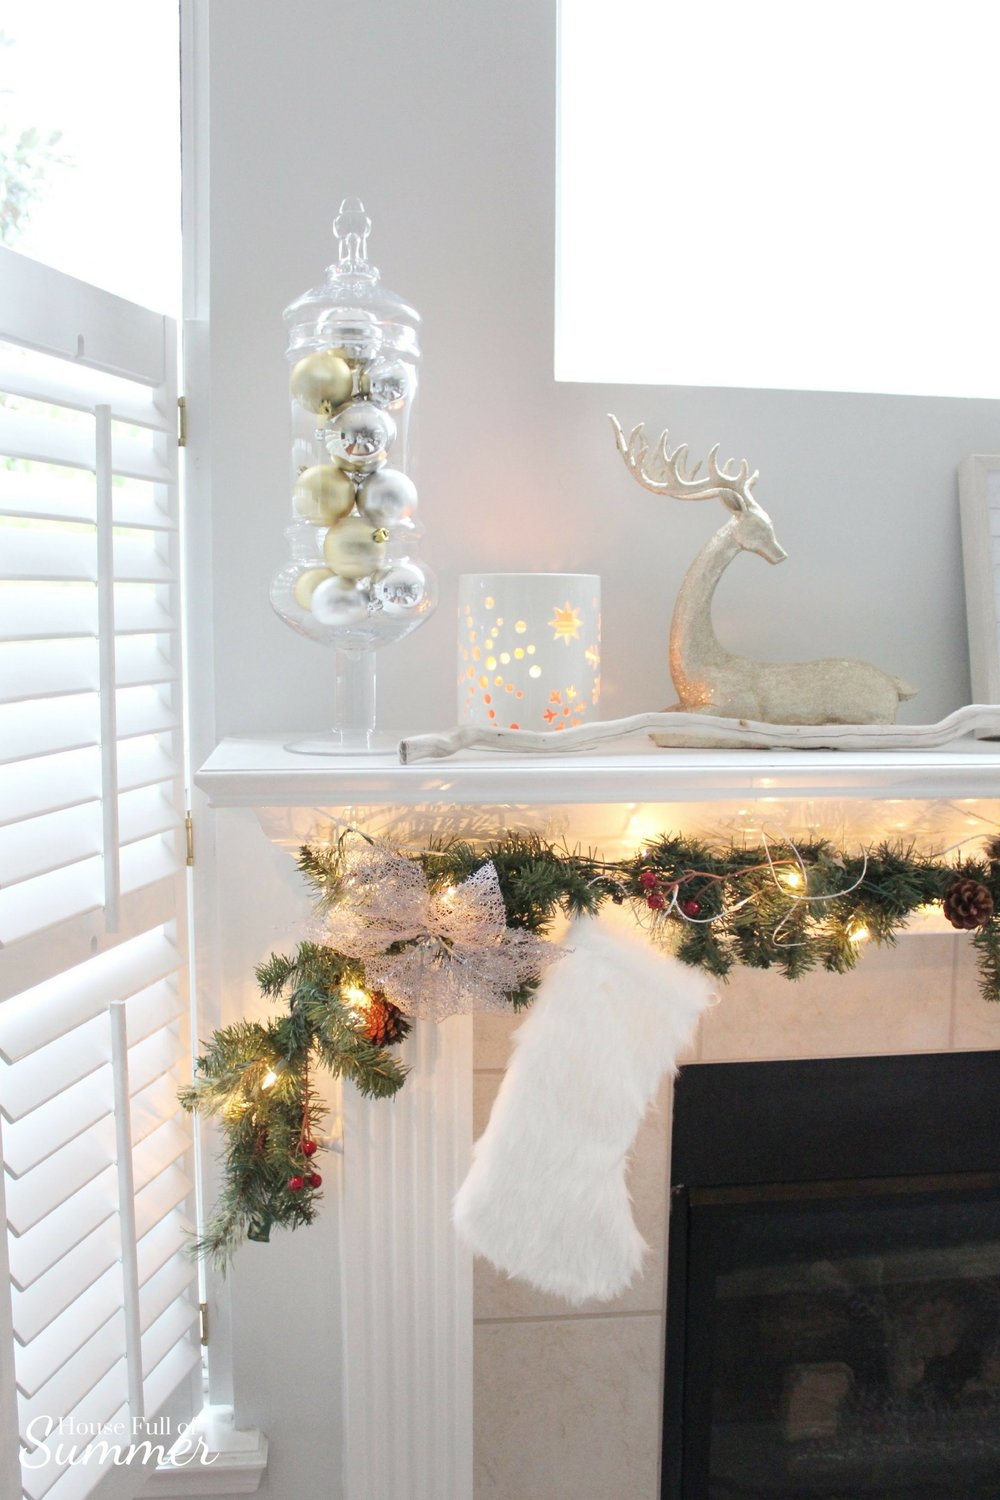 Classy Christmas Home Tour {Part Two} — House Full of Summer